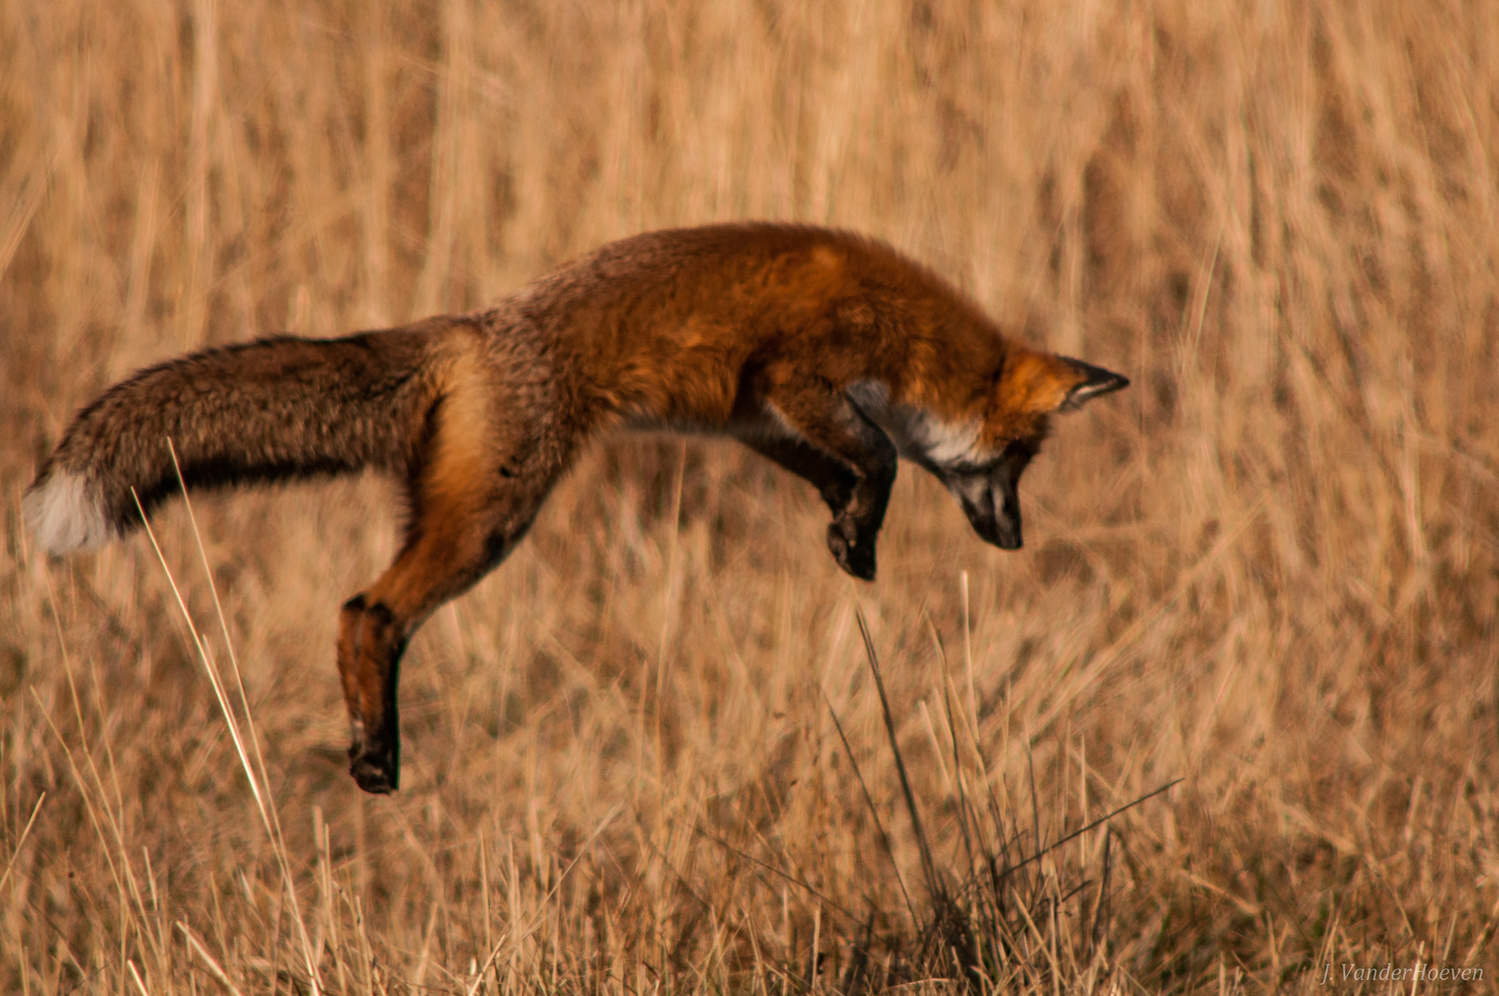 Pouncing Fox by Jake VanderHoeven